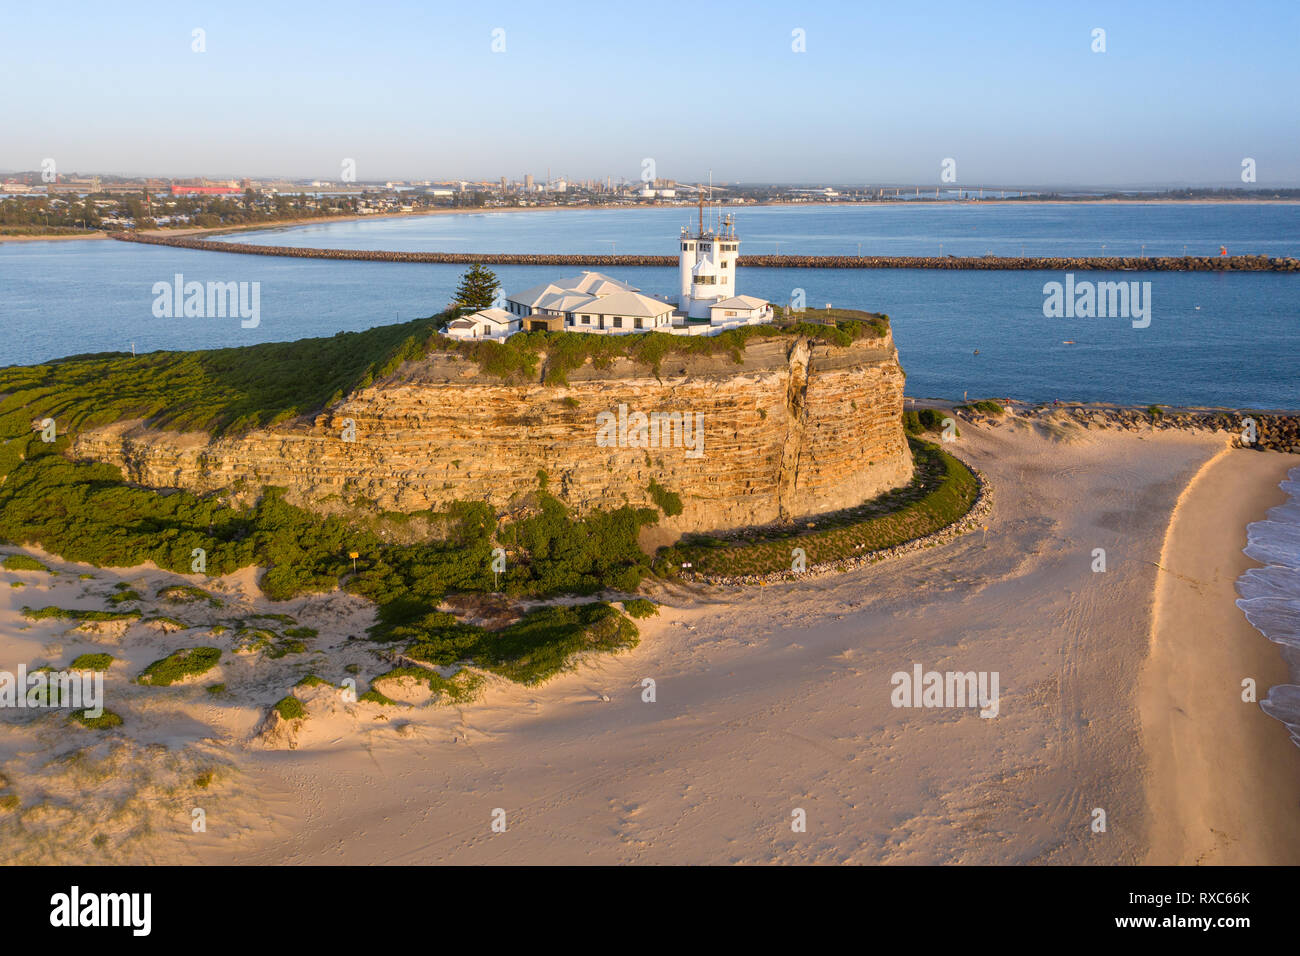 Aerial view at sunrise of Nobbys Lighthouse a prominent landmark in the Harbour City of Newcastle. - Stock Image